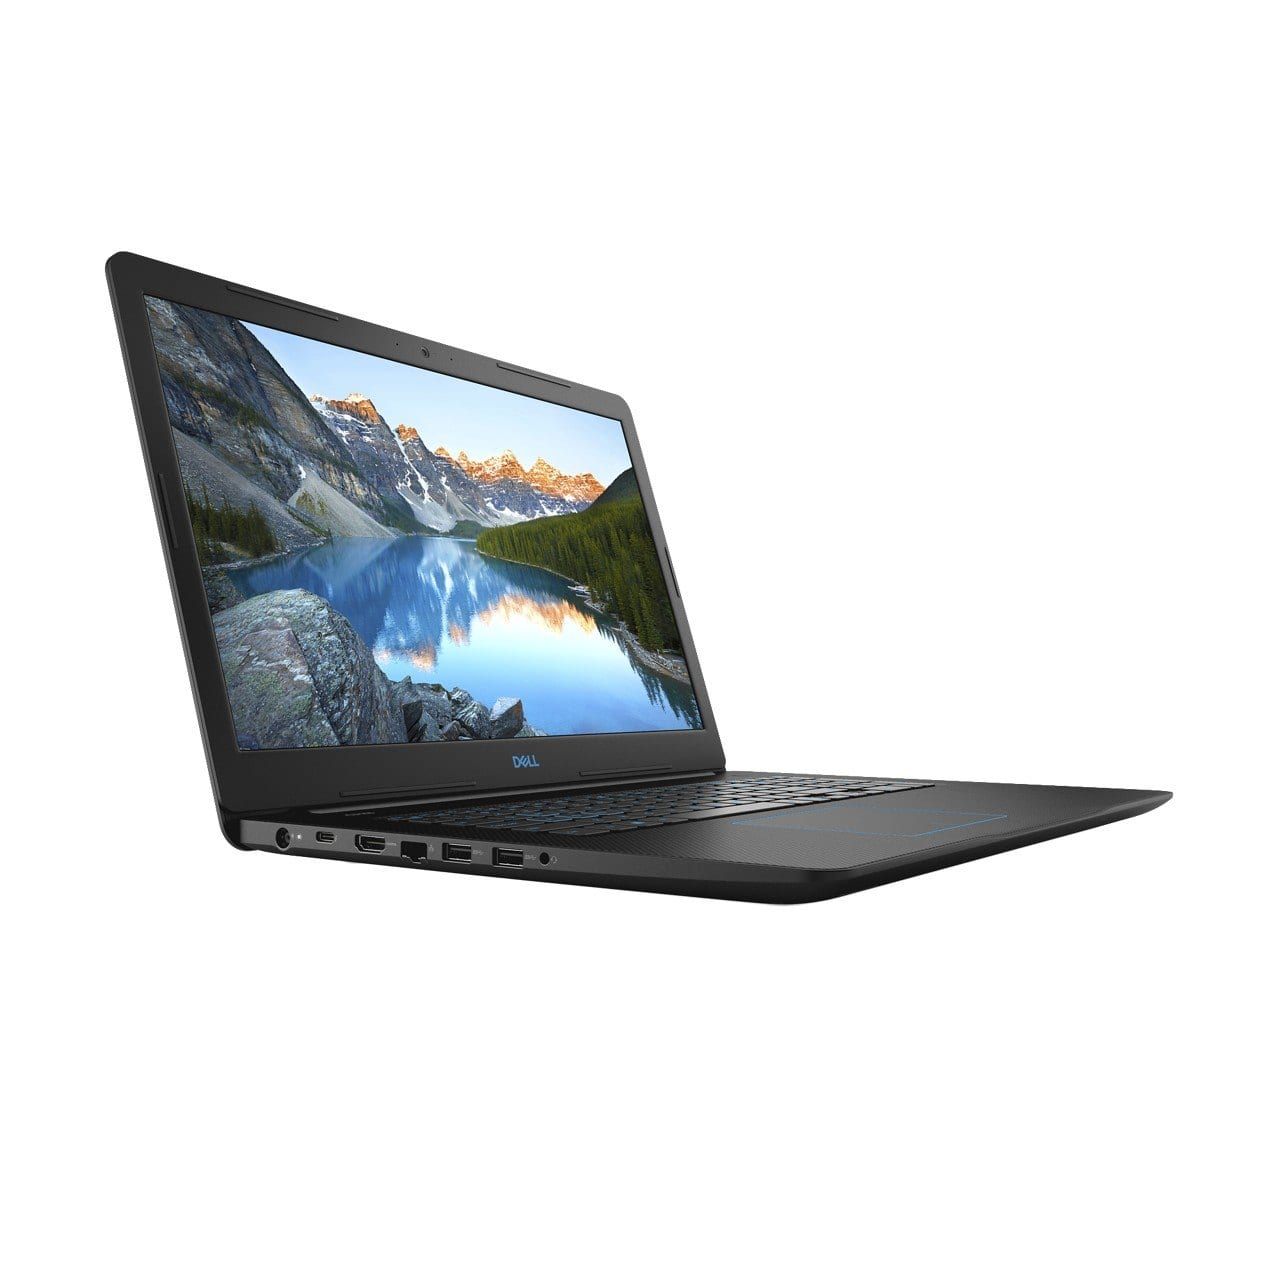 Dell G3 17 Gaming Laptop: i7-8750H, iGB DDR3, GTX 1050 TI, 128GB + 1TB HDD, Thunderbolt 3, Backlit KB for $849.99 AC + Free Shipping